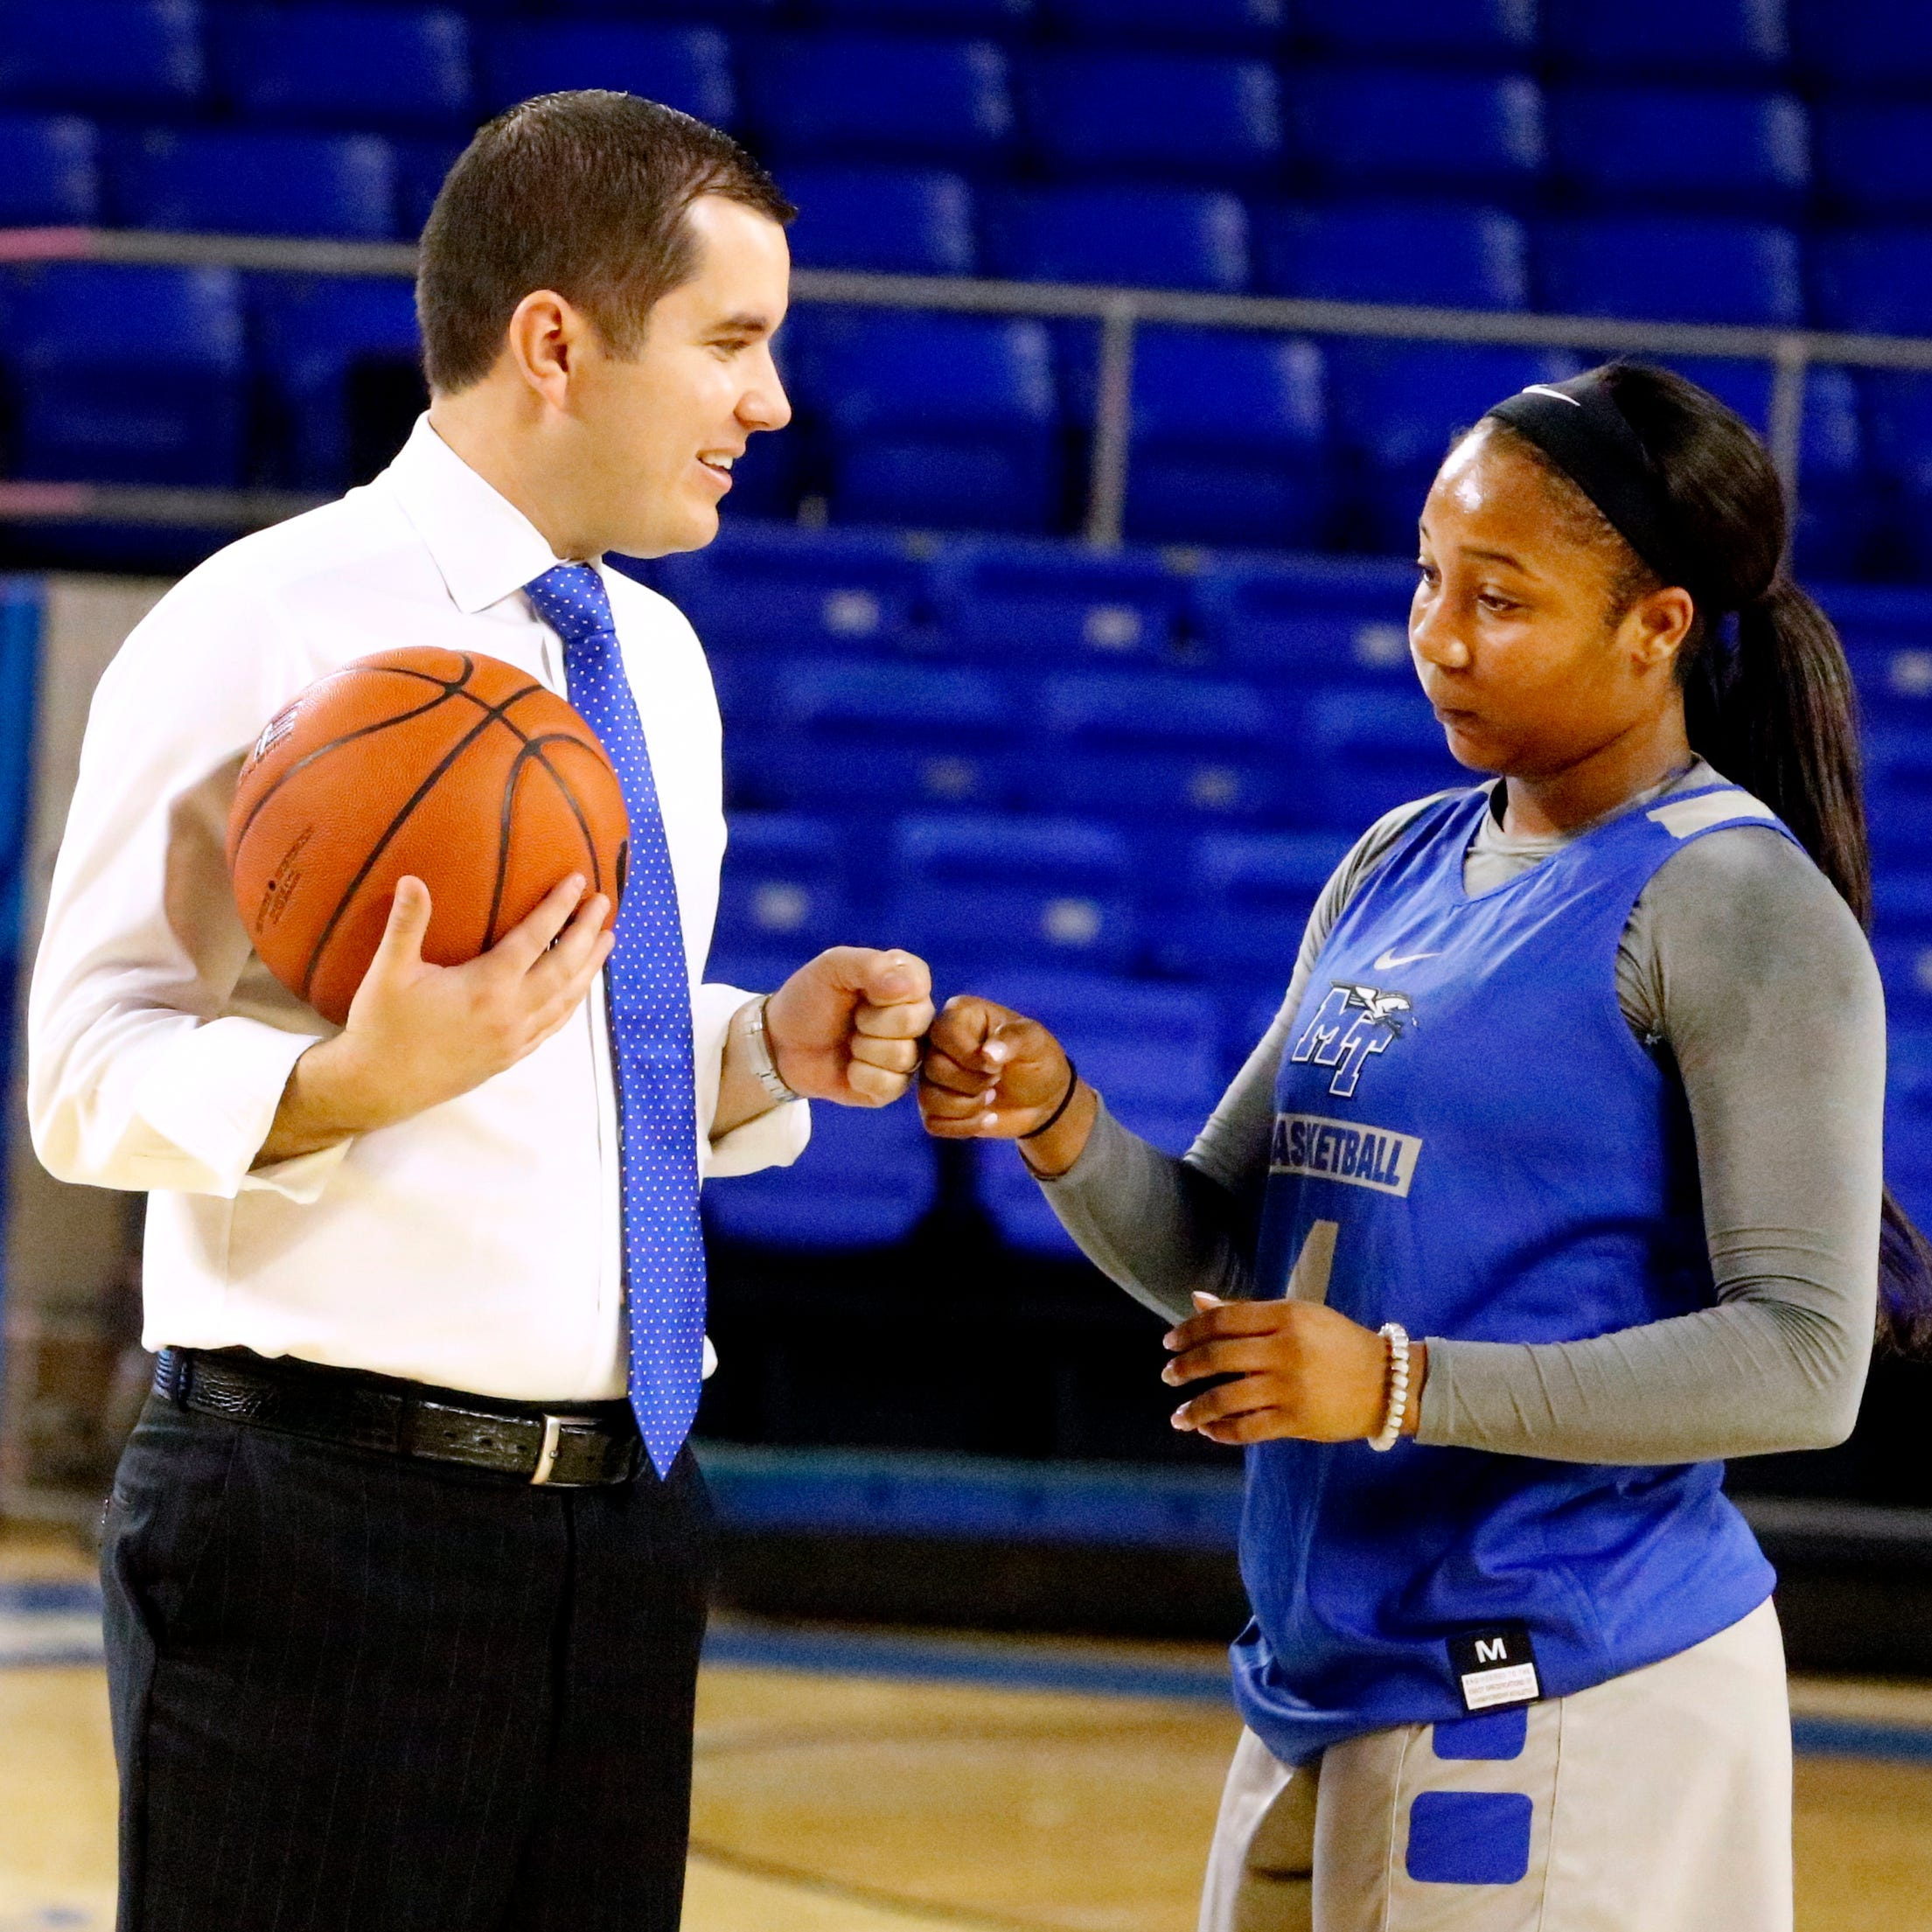 Anastasia Hayes on Lady Vols: 'That wasn't the place for me to be' and God sent me to MTSU